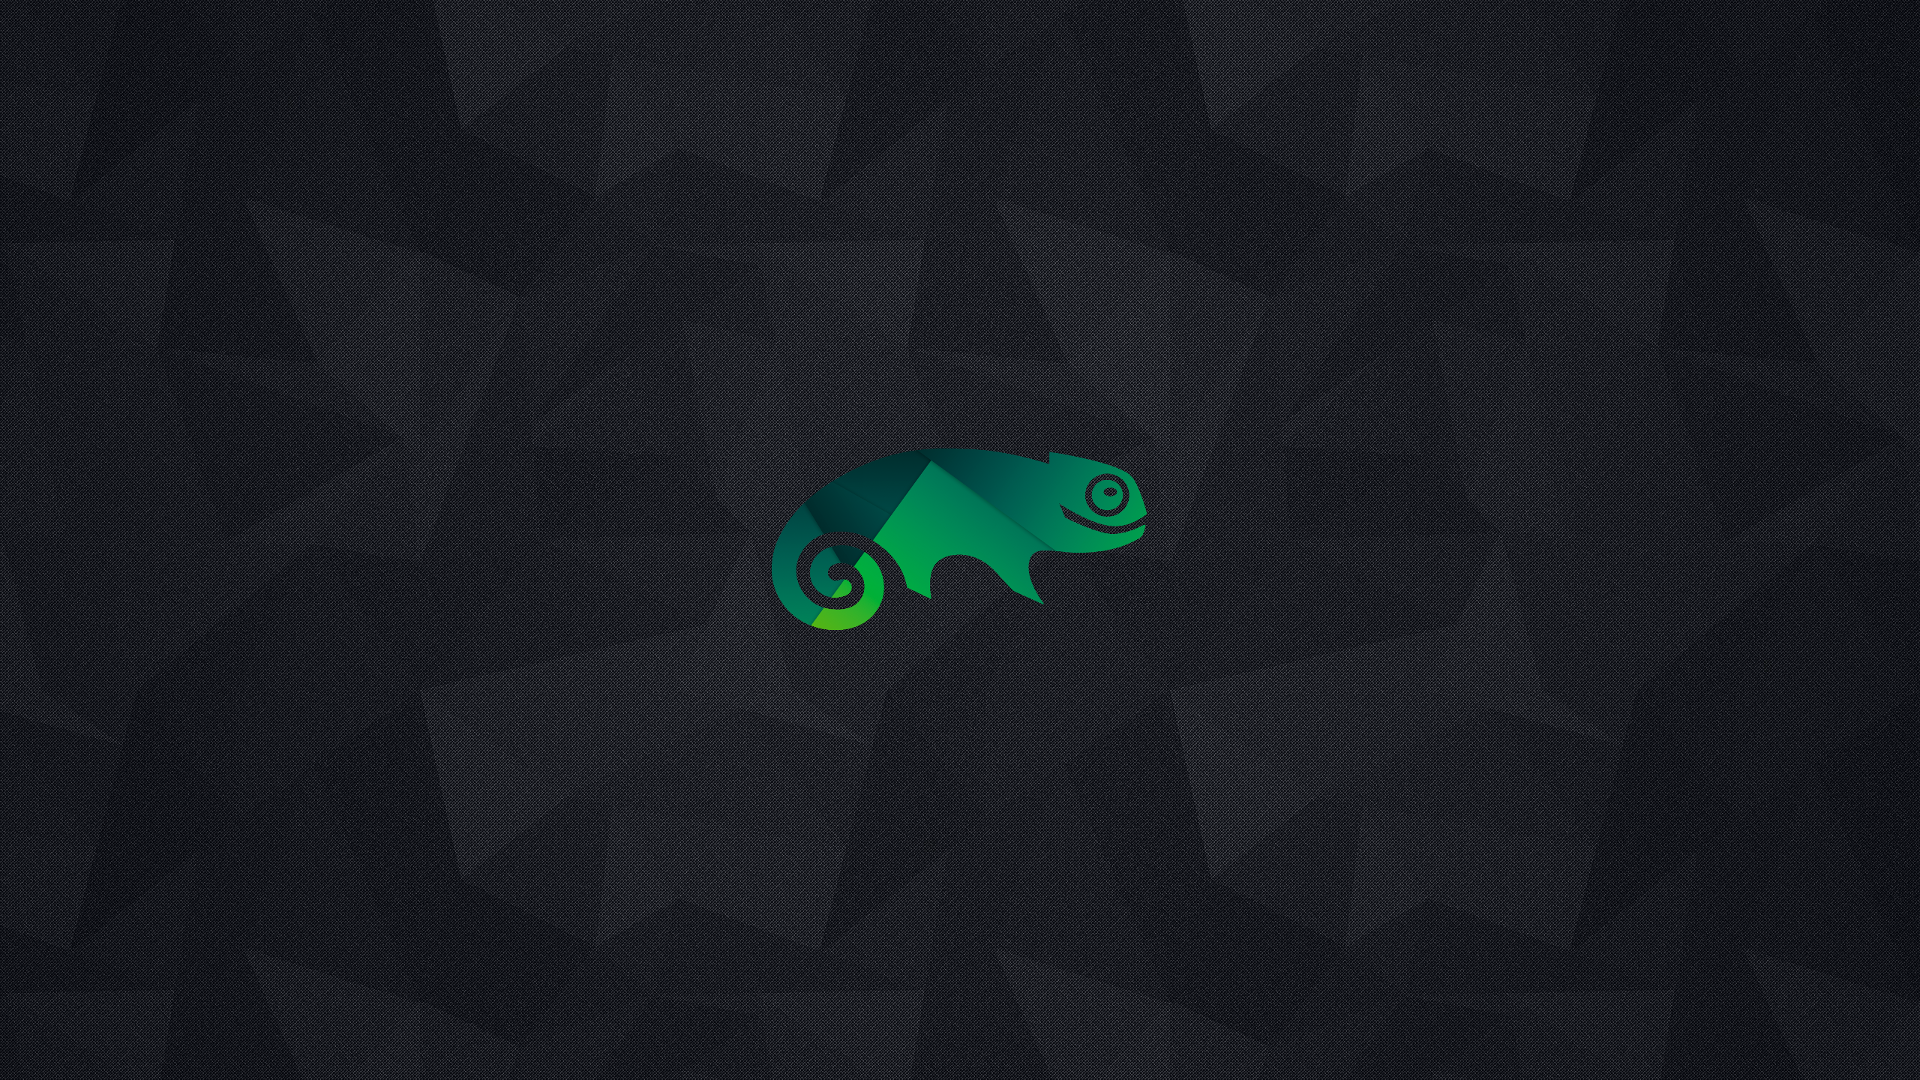 1920x1080 openSUSE wallpaper] Here's another wall. Grab the .zip for all ...